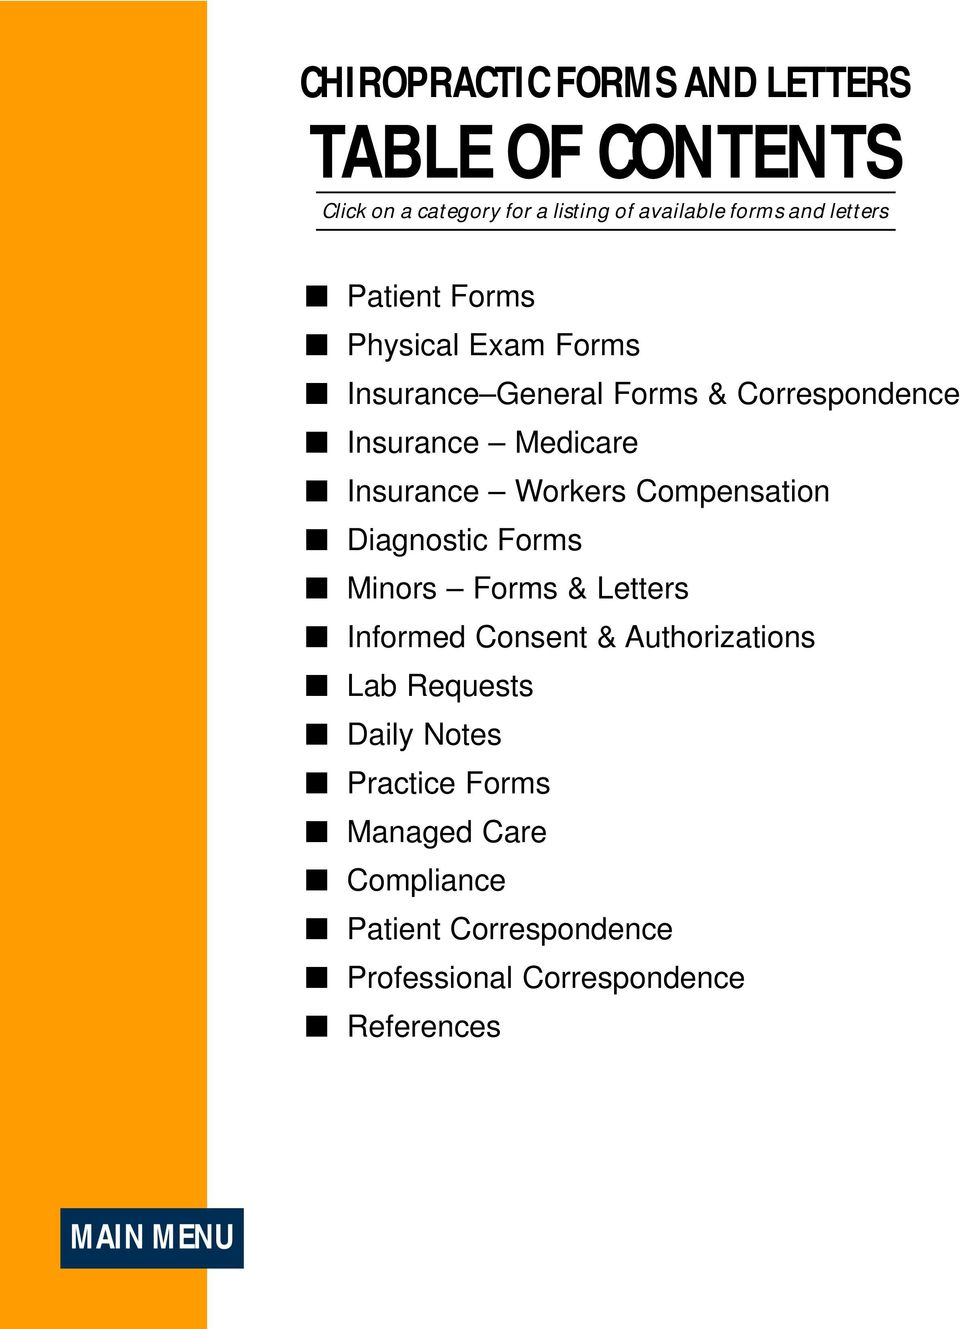 Workers Compensation Diagnostic Forms Minors Forms & Letters Informed Consent & Authorizations Lab Requests